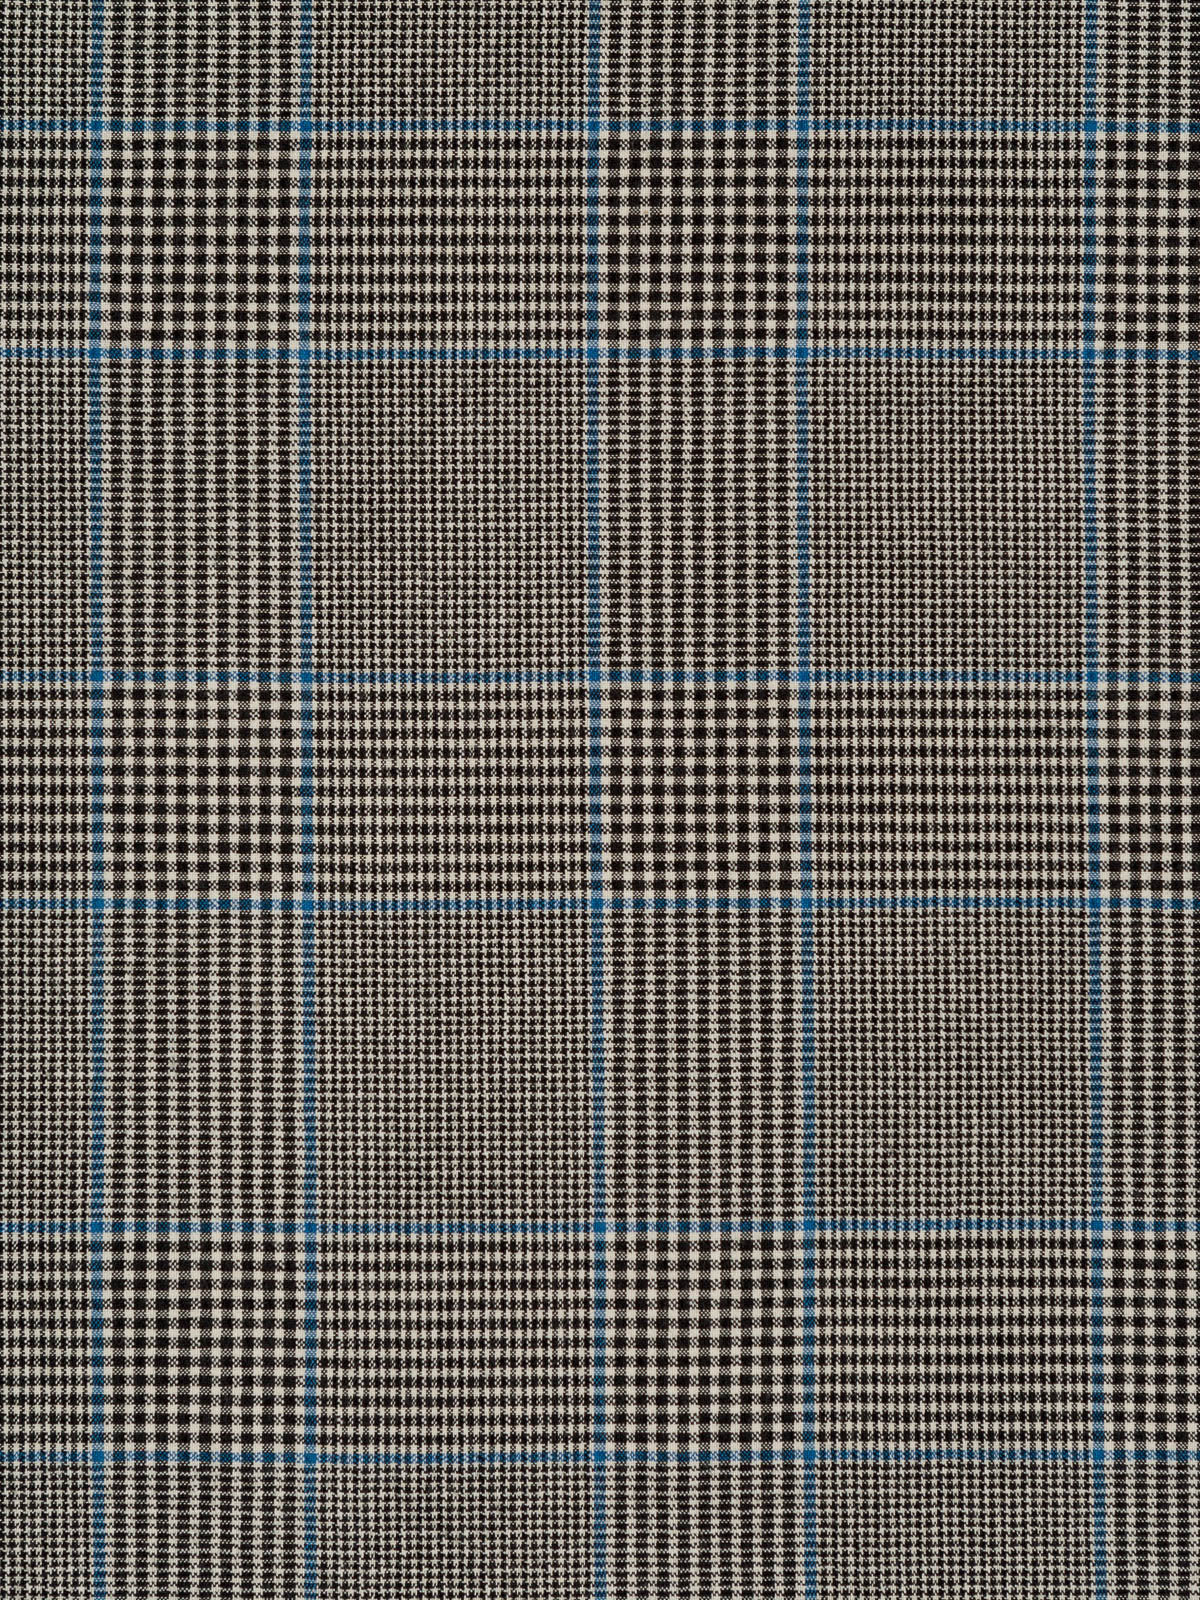 Prince Of Wales Blue And Black Seersucker Fabric